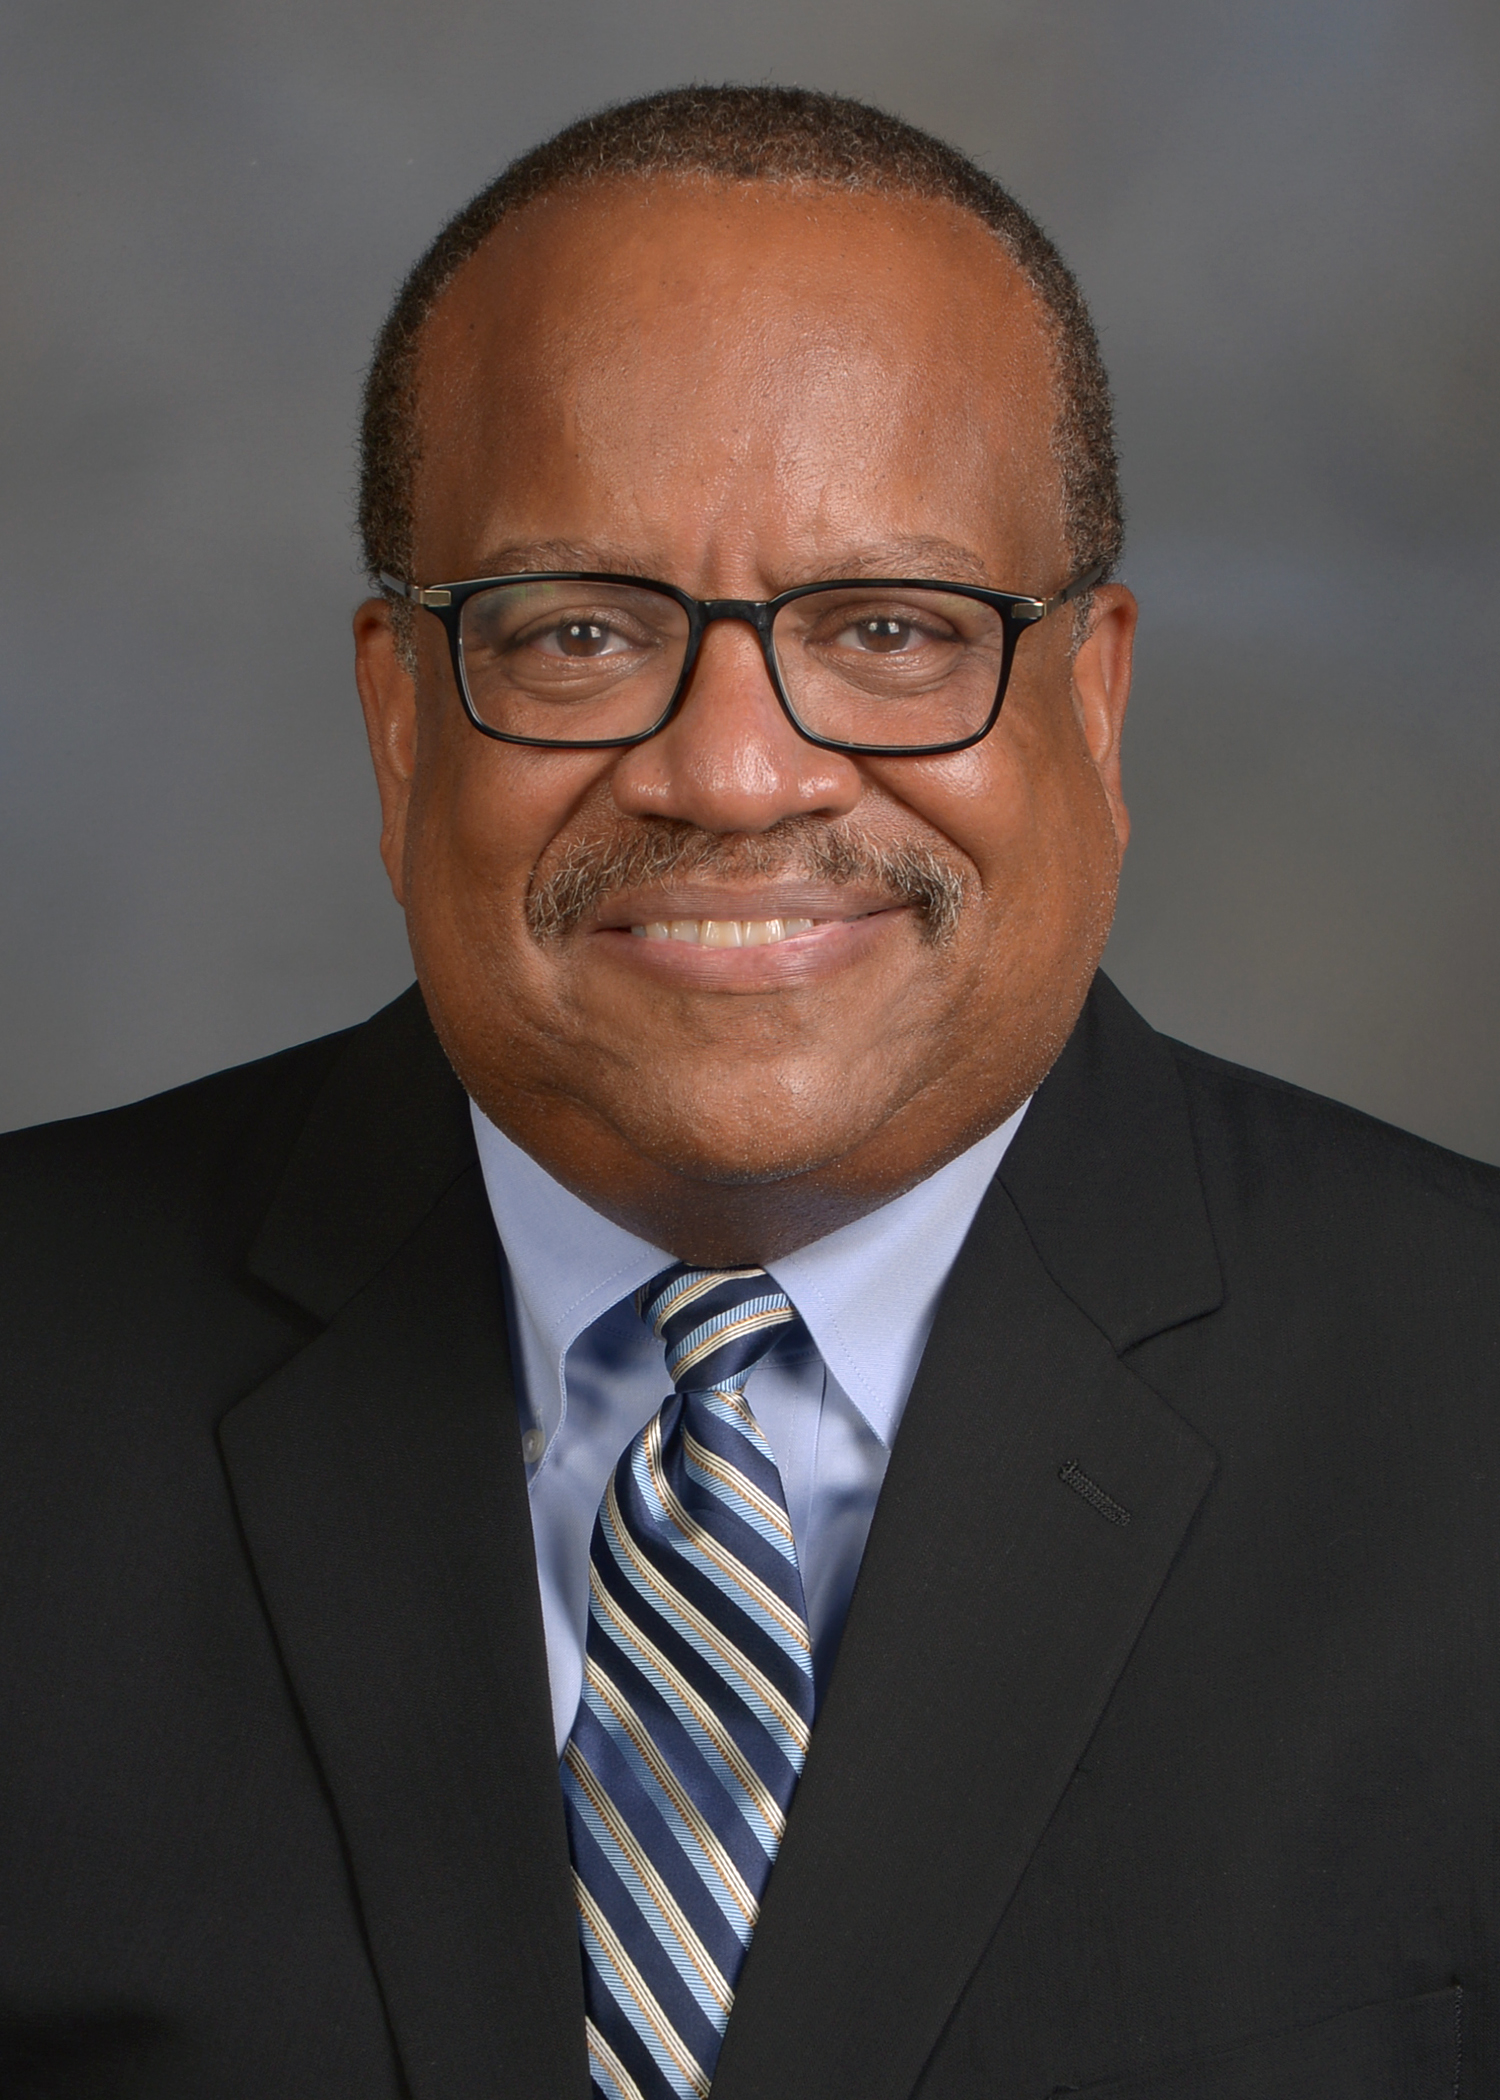 Keith Carter, MD, FACS